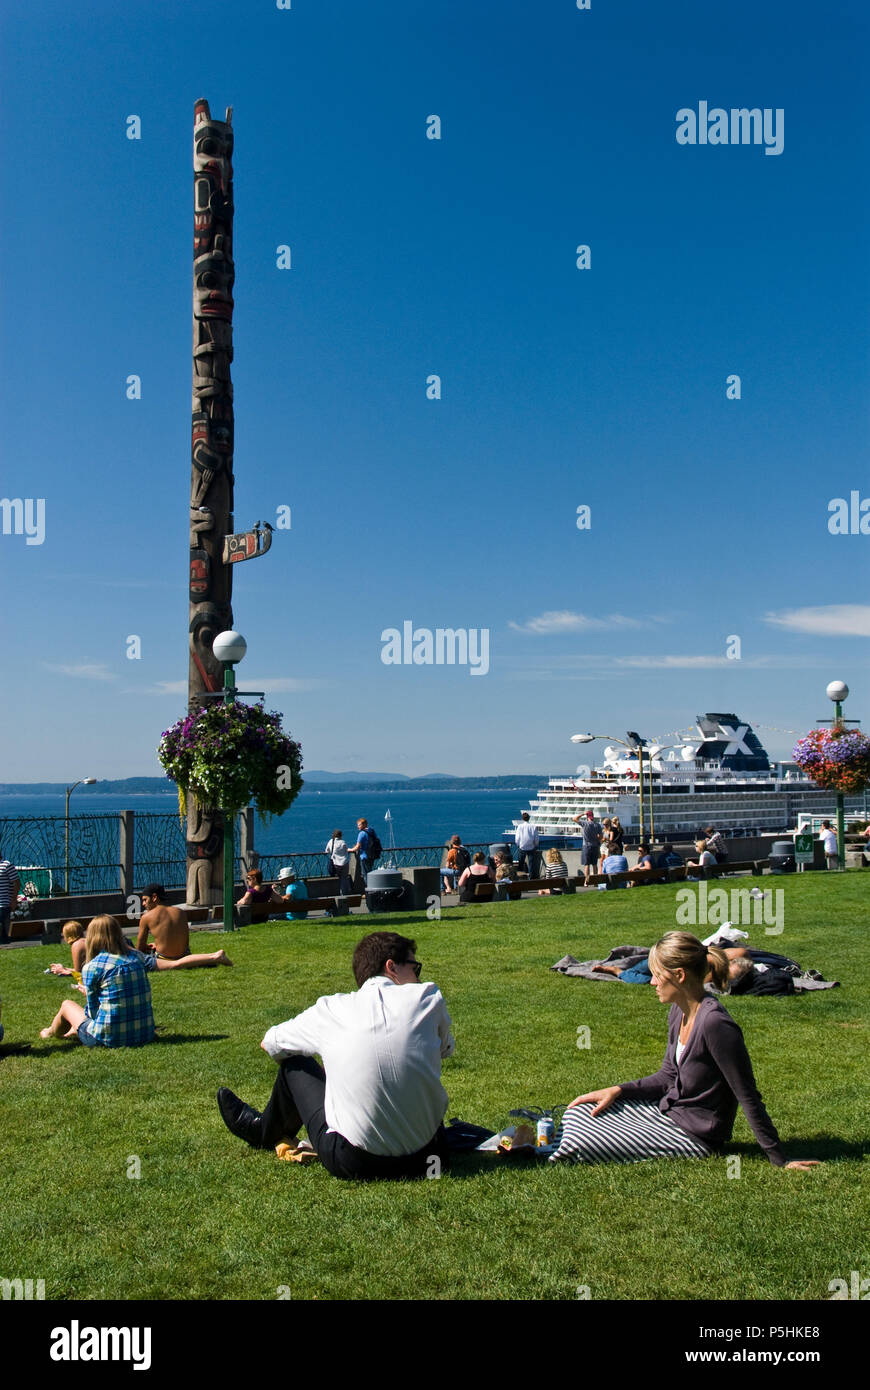 People enjoy a sunny day at Victor Steinbrueck Park, near Pike Place Market, in downtown Seattle, Washington. - Stock Image